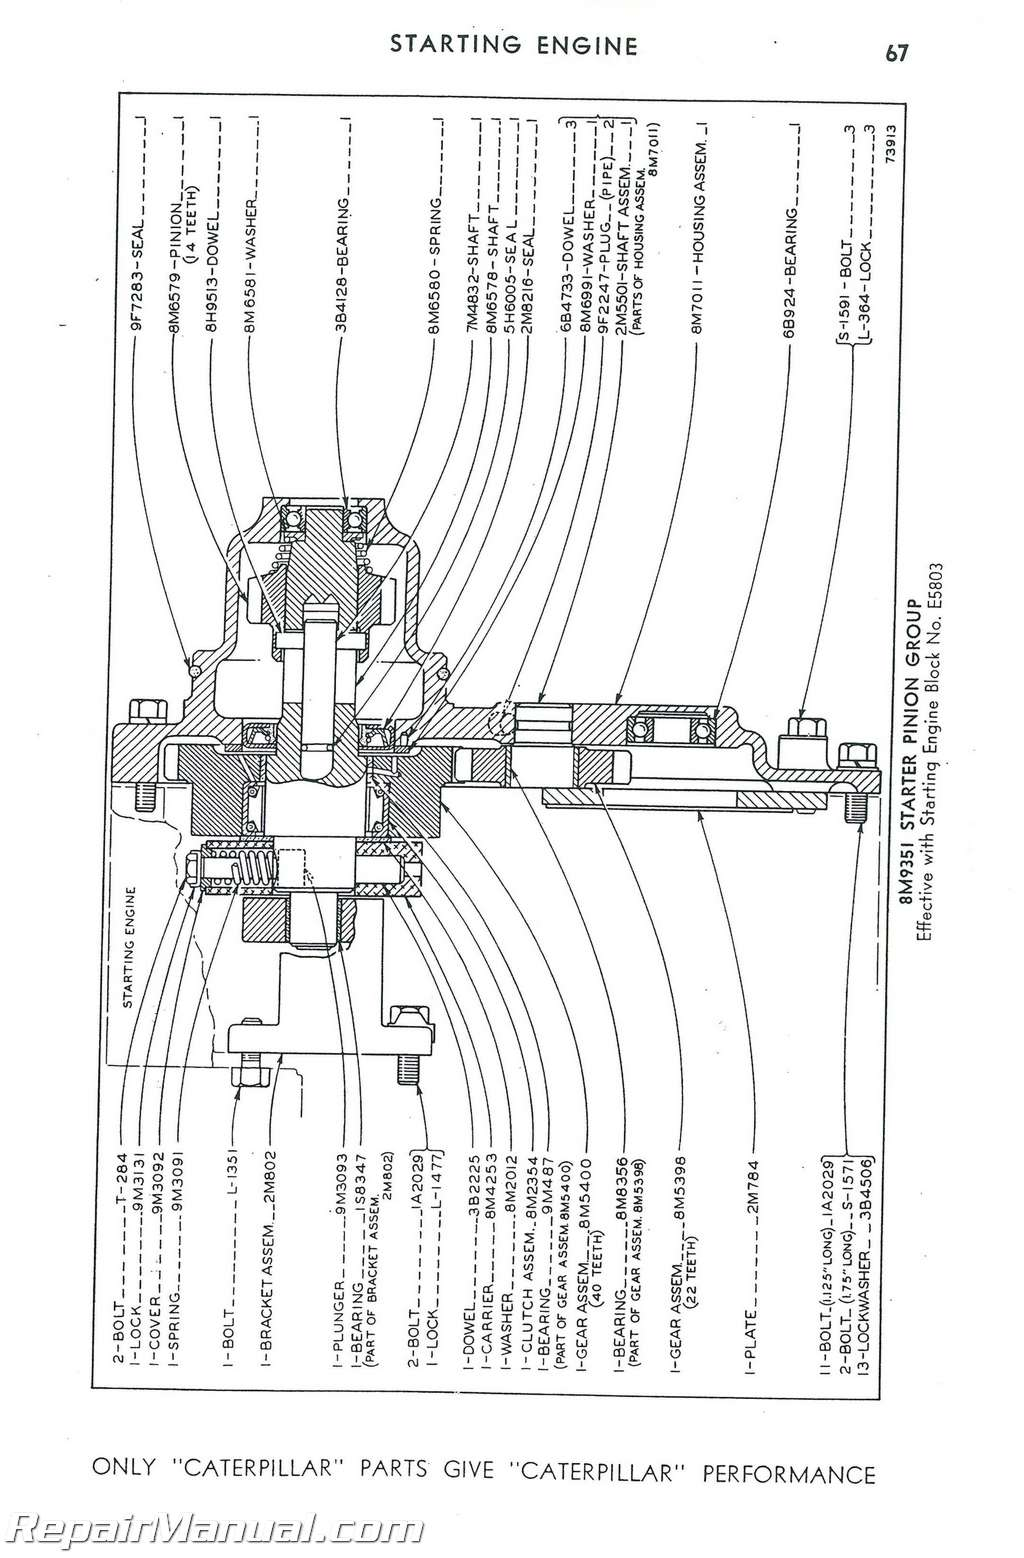 Caterpillar D6 Crawler 74 Inch 44A6857-44A13071Parts Manual